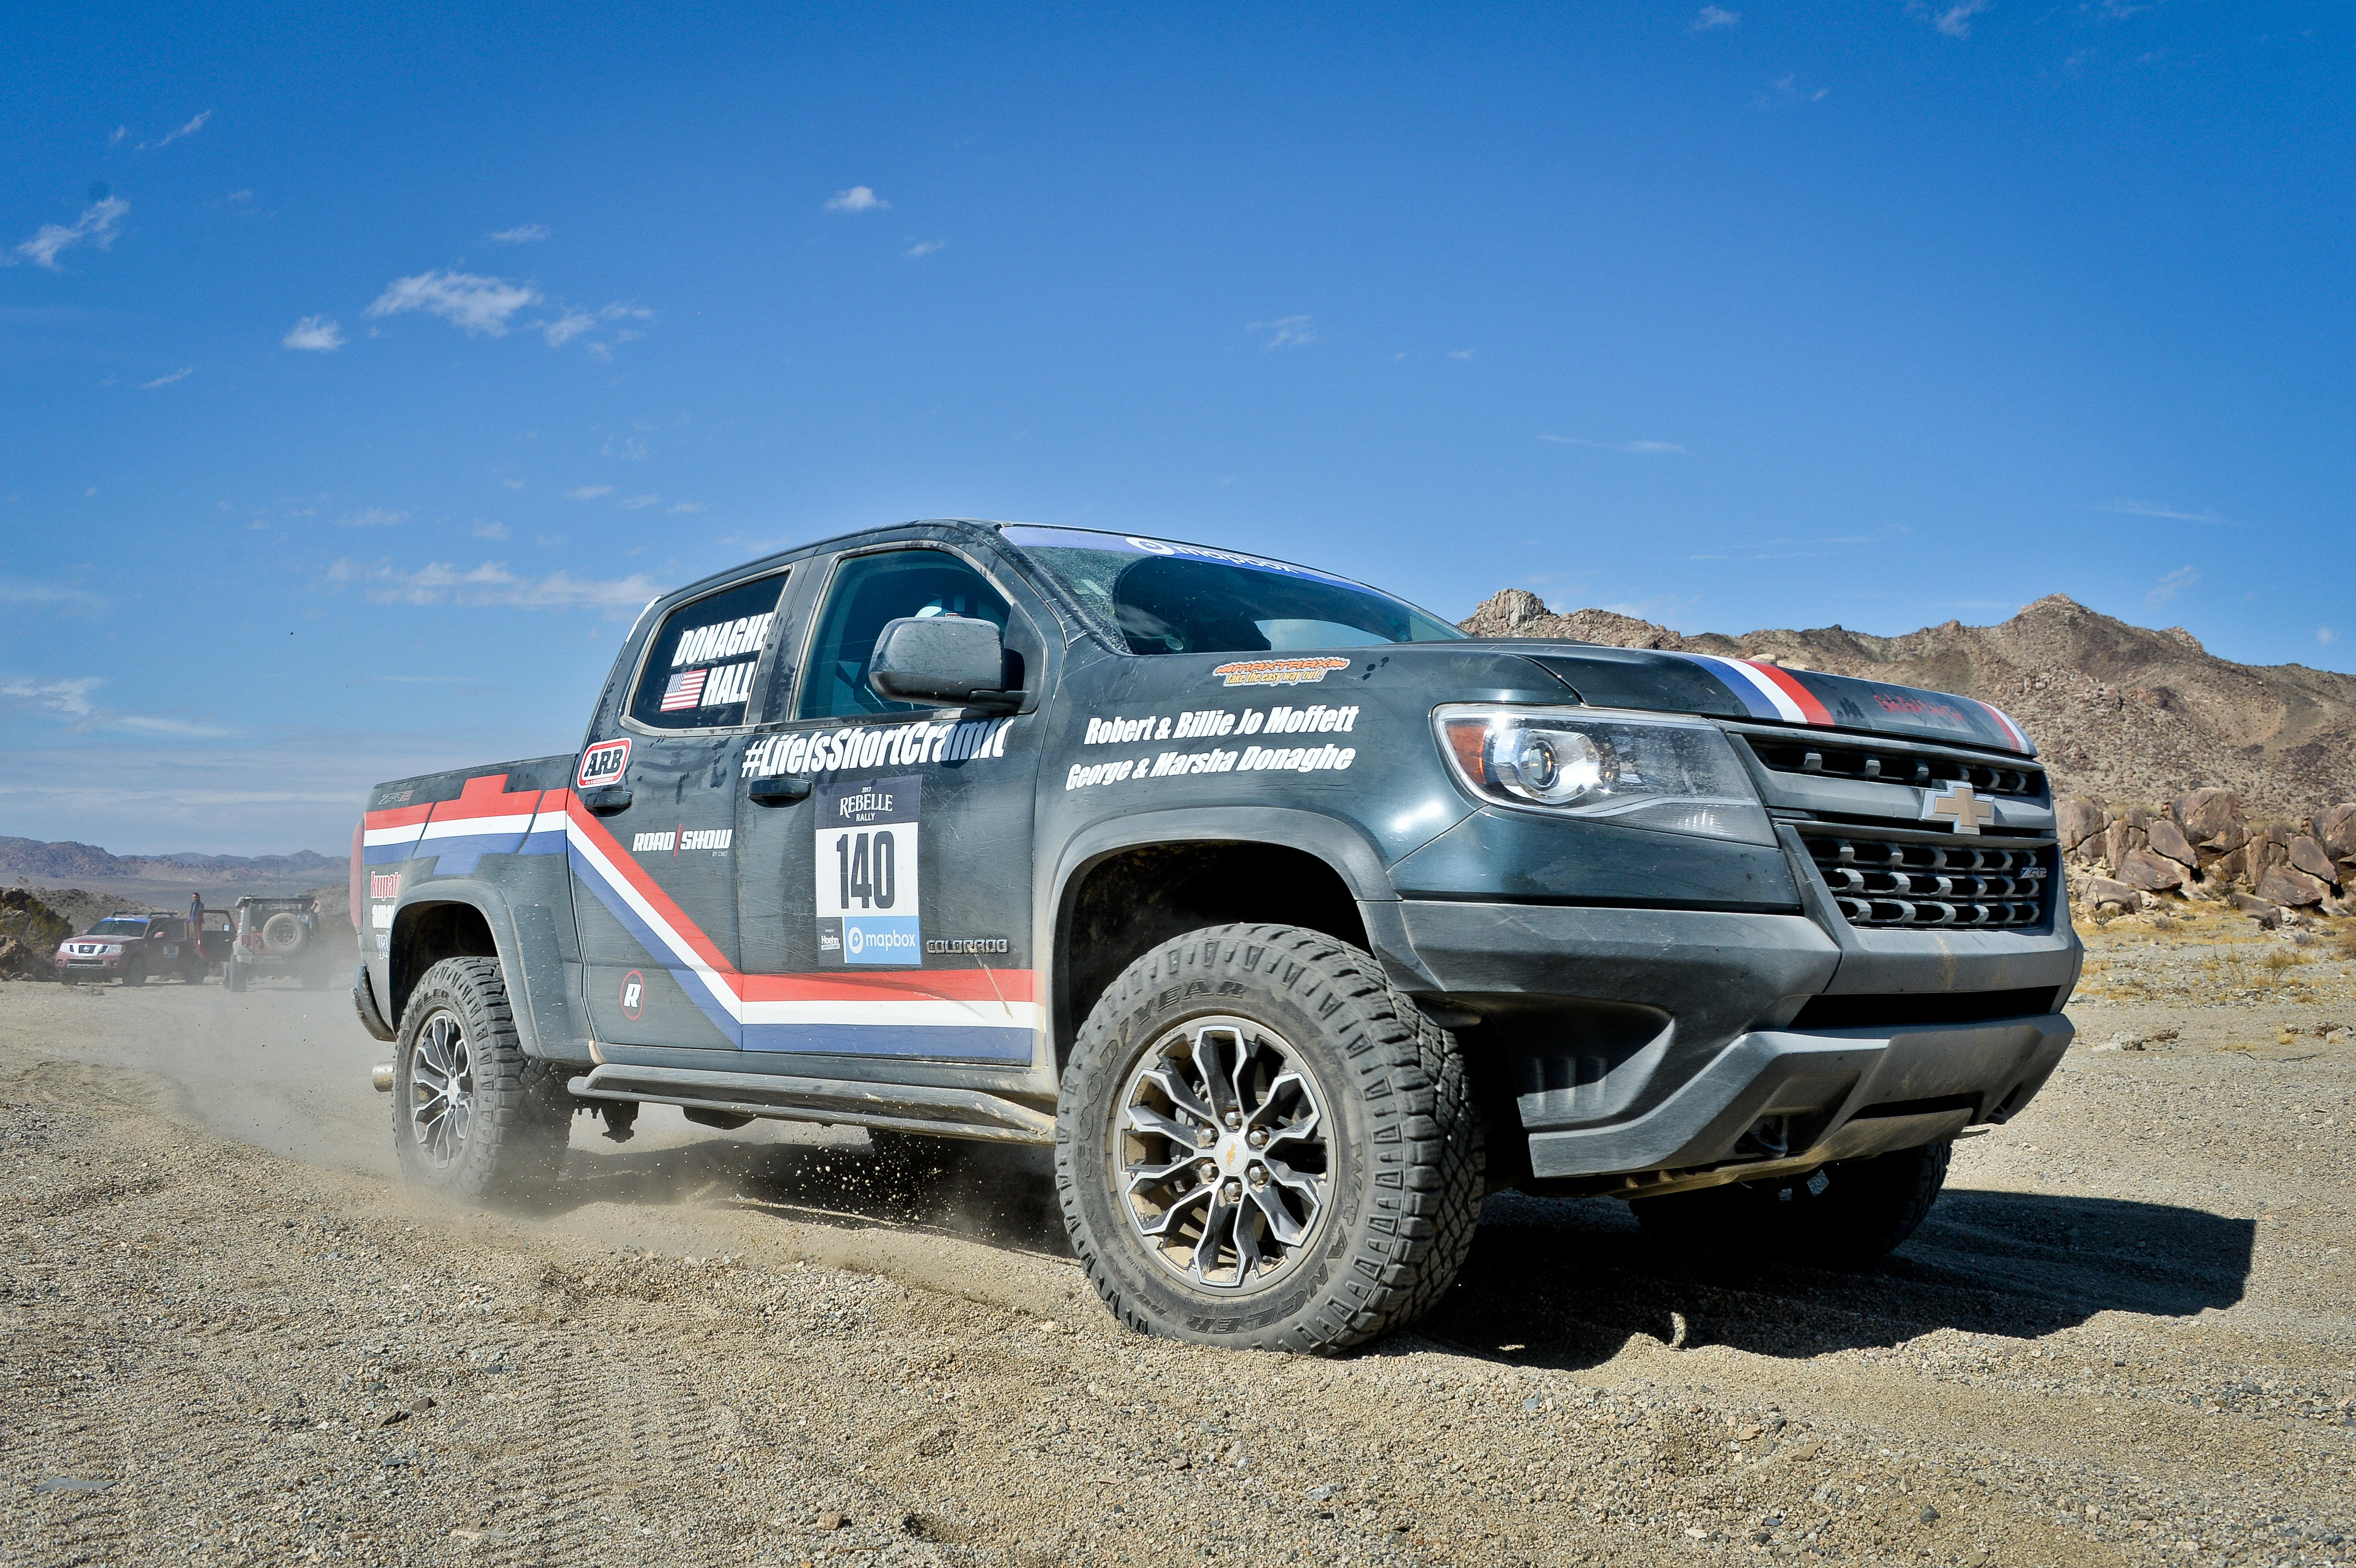 2017 Chevrolet Colorado ZR2 Rebelle Rally